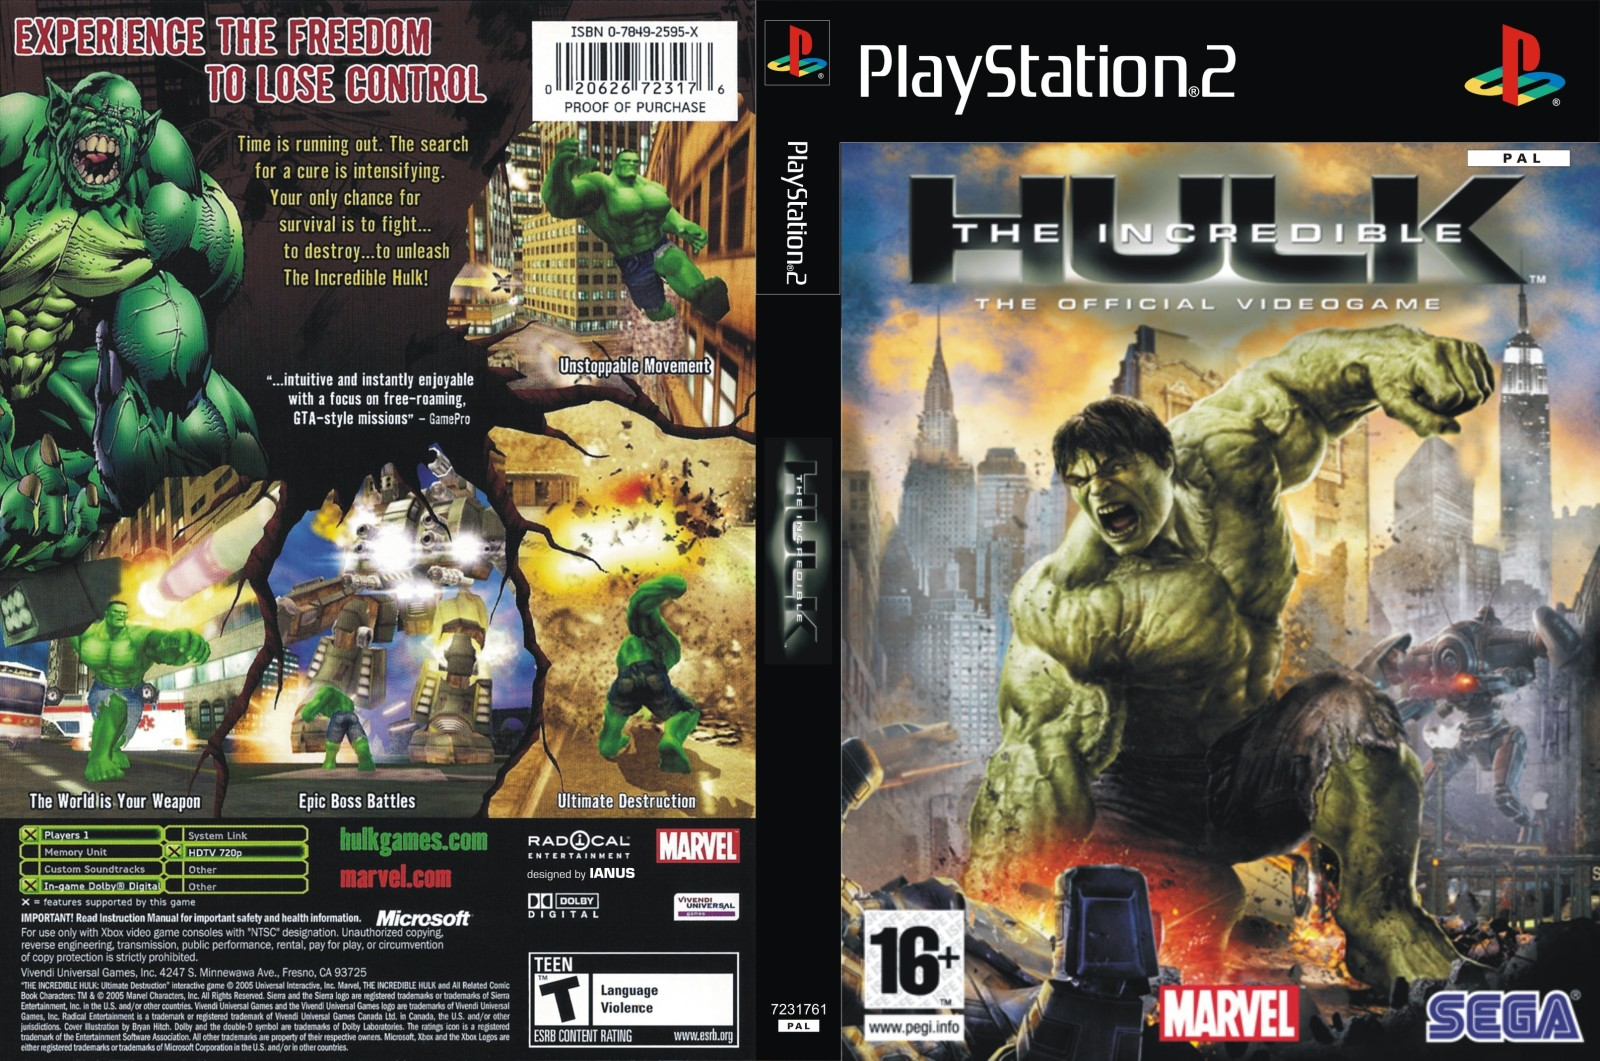 Incredible hulk, the (usa) iso < ps2 isos | emuparadise.